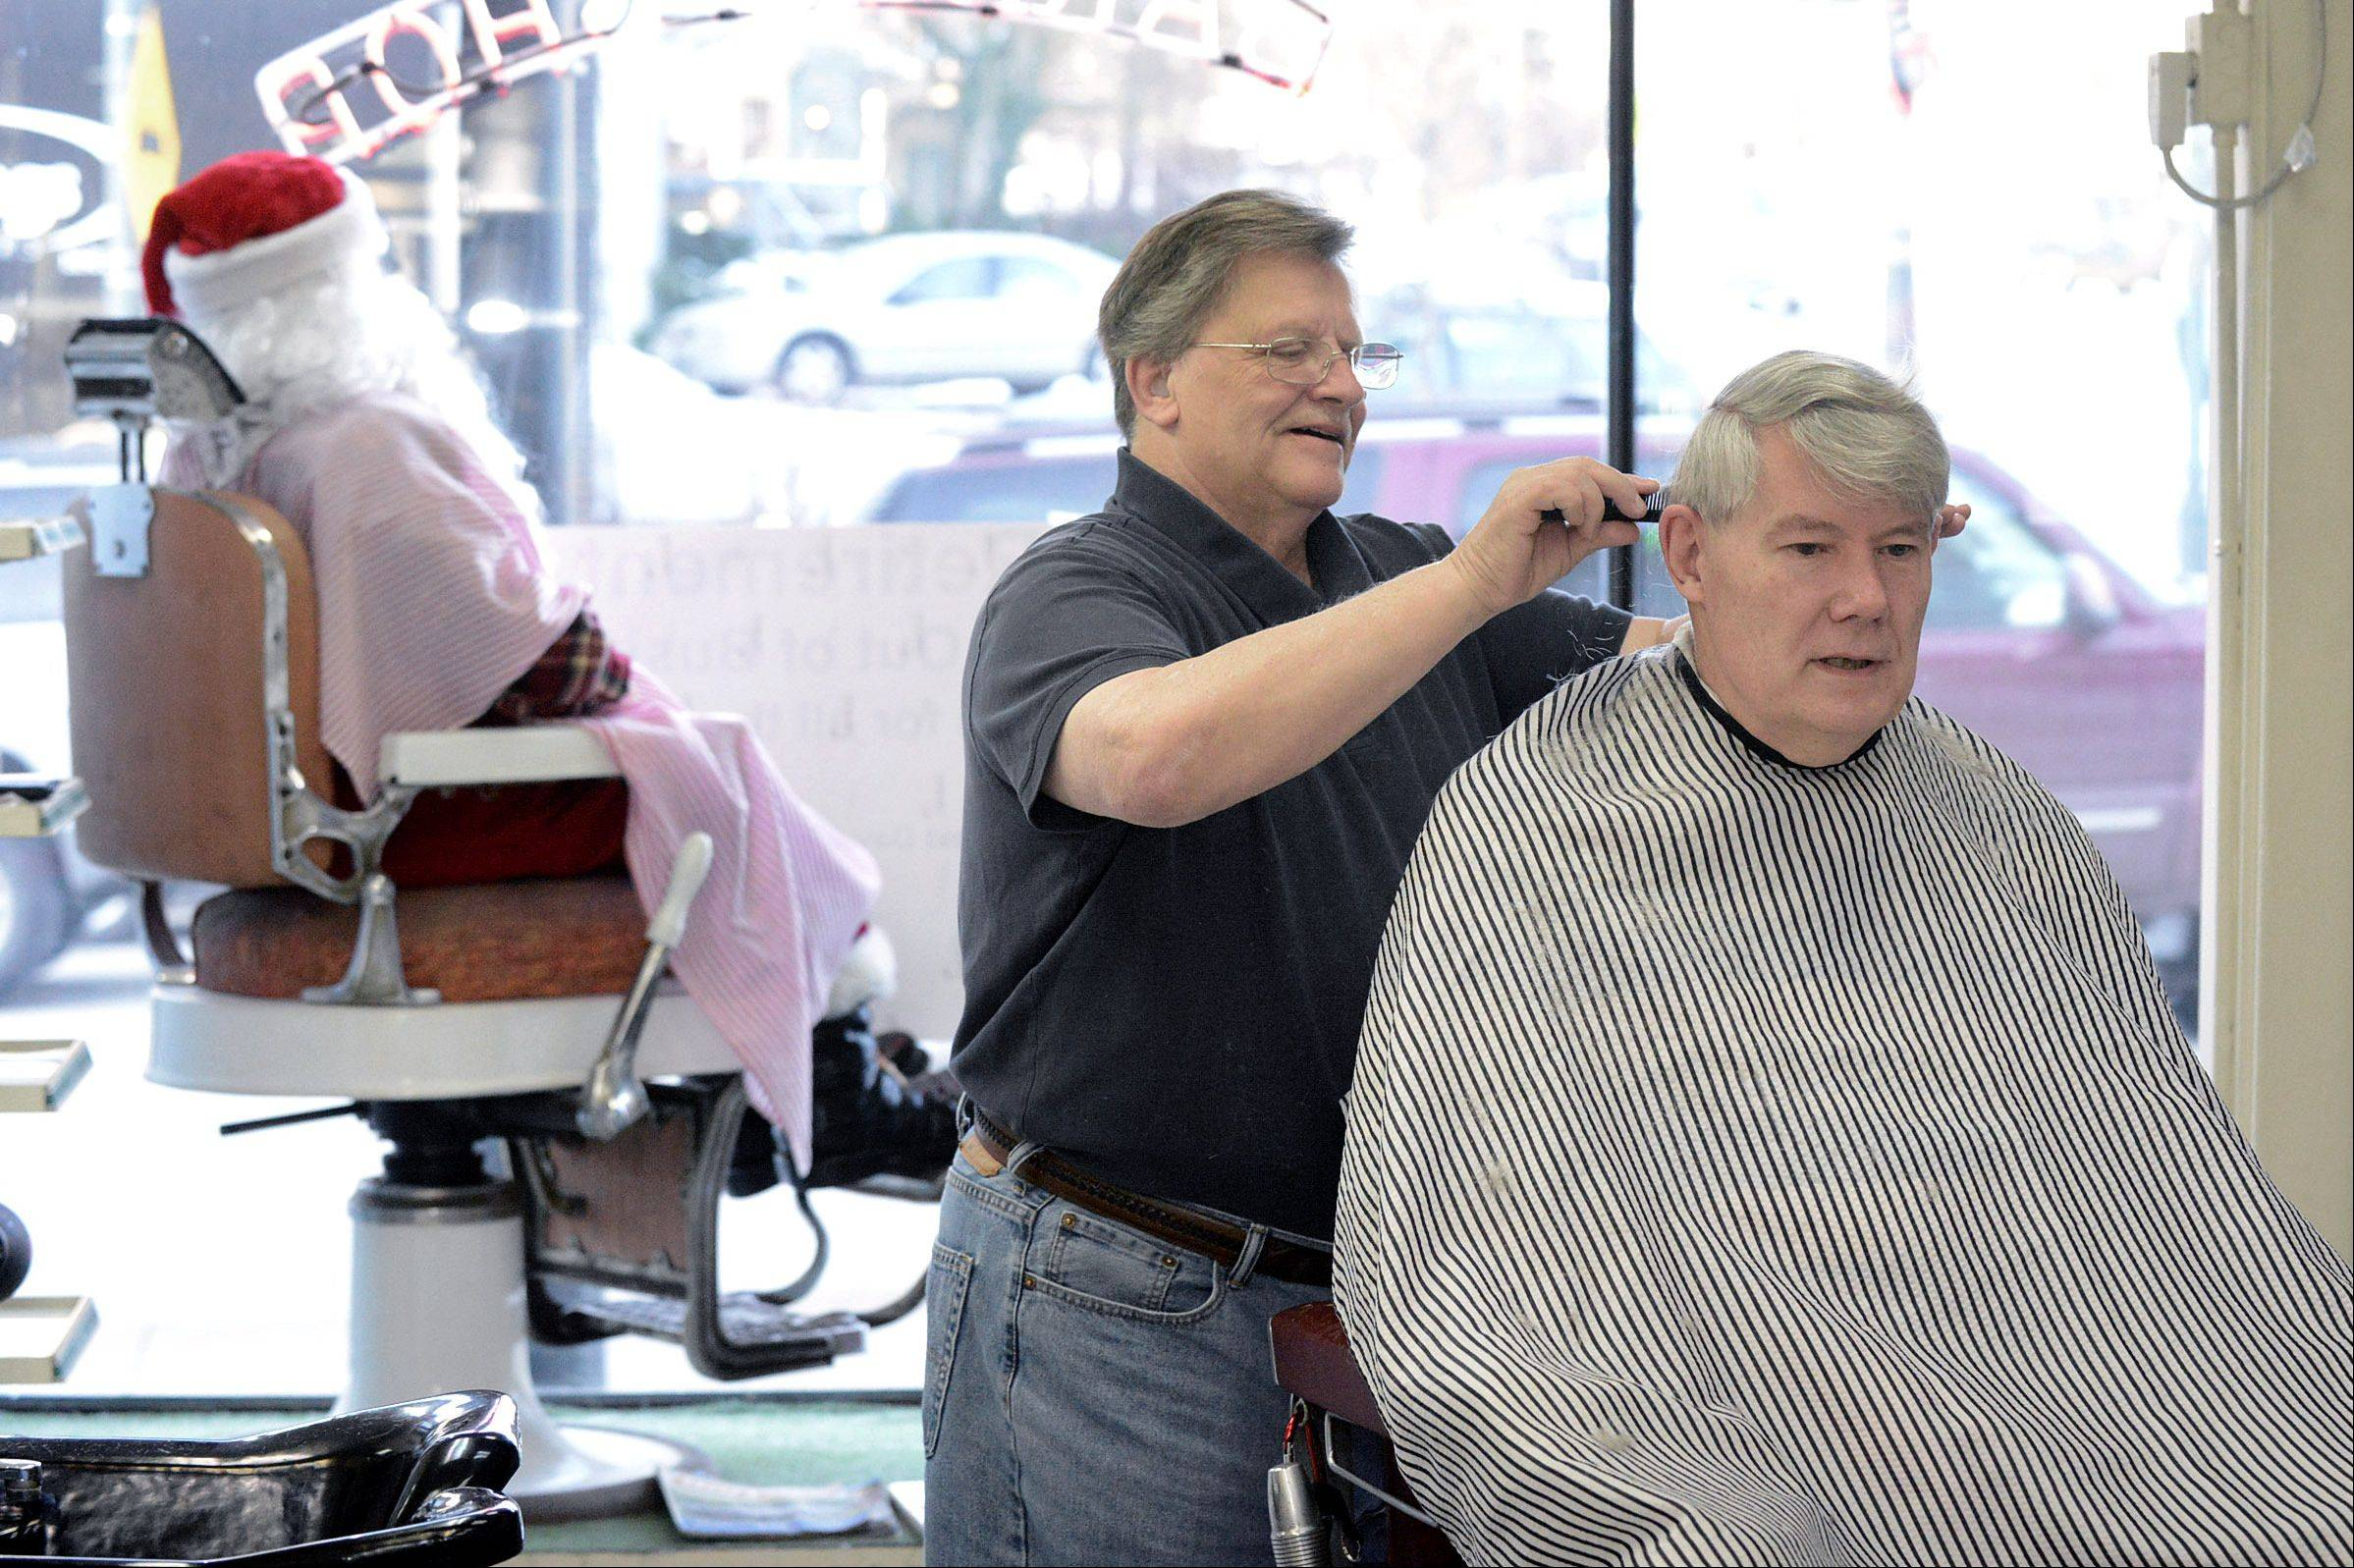 Barber Ron Saltzgiver gives William Hardey of North Aurora a trim in his shop Wednesday. After 45 year in St. Charles, Saltzgiver is retiring. Hardey and Saltzgiver have known each other since 1953 when they both attended Mooseheart in Batavia. After returning from Vietnam in 1968, Saltzgiver bought Berry's Barbershop, which first opened in 1910. The shop will close Saturday.